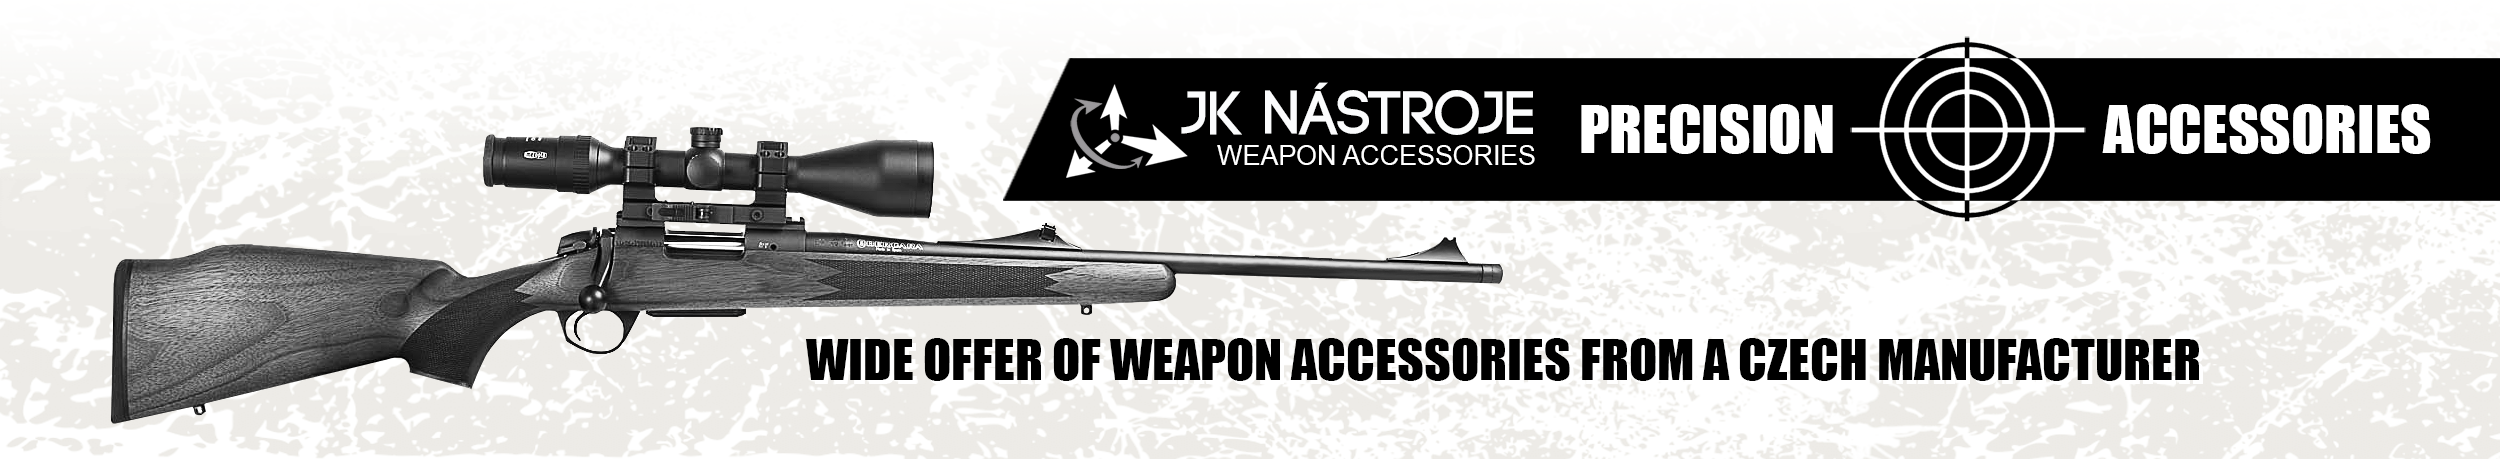 Wide offer of weapon accessories from a Czech manufacturer